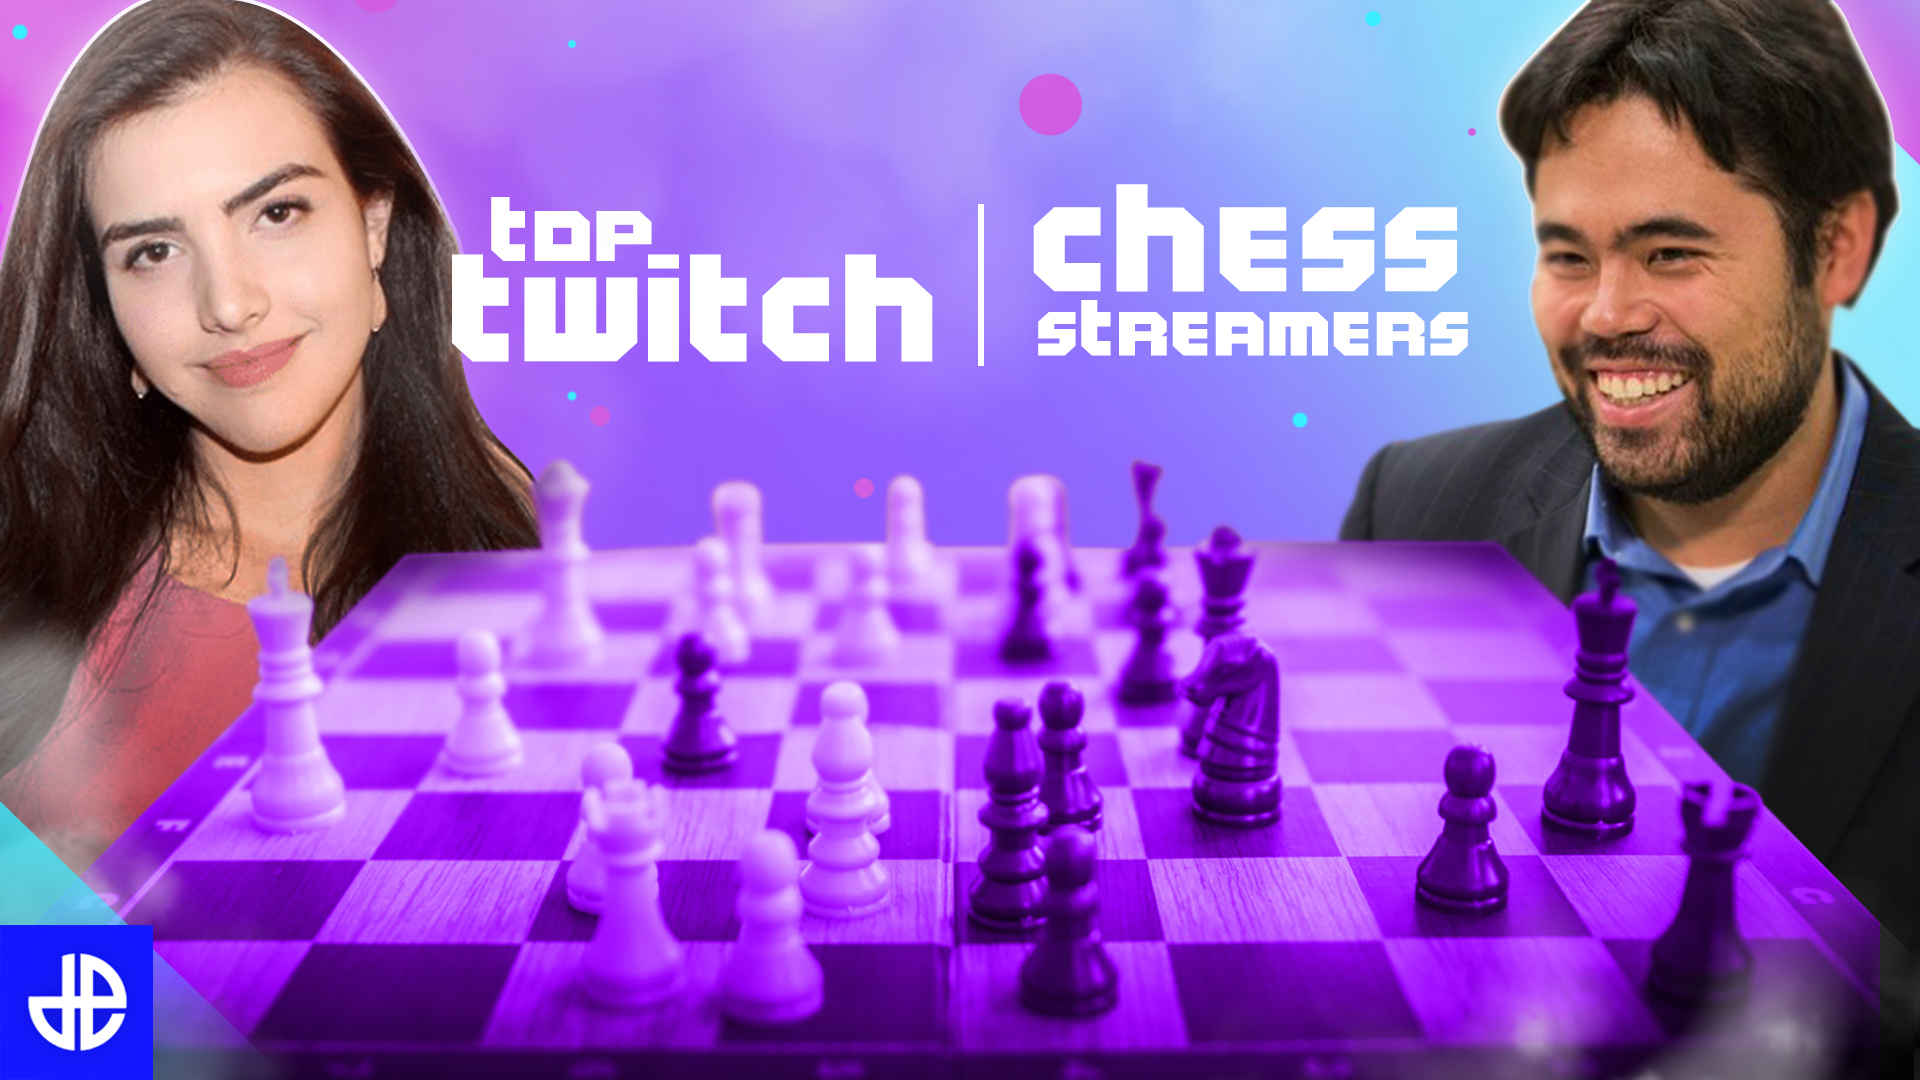 best chess streamers on twitch hikaru and botez sisters